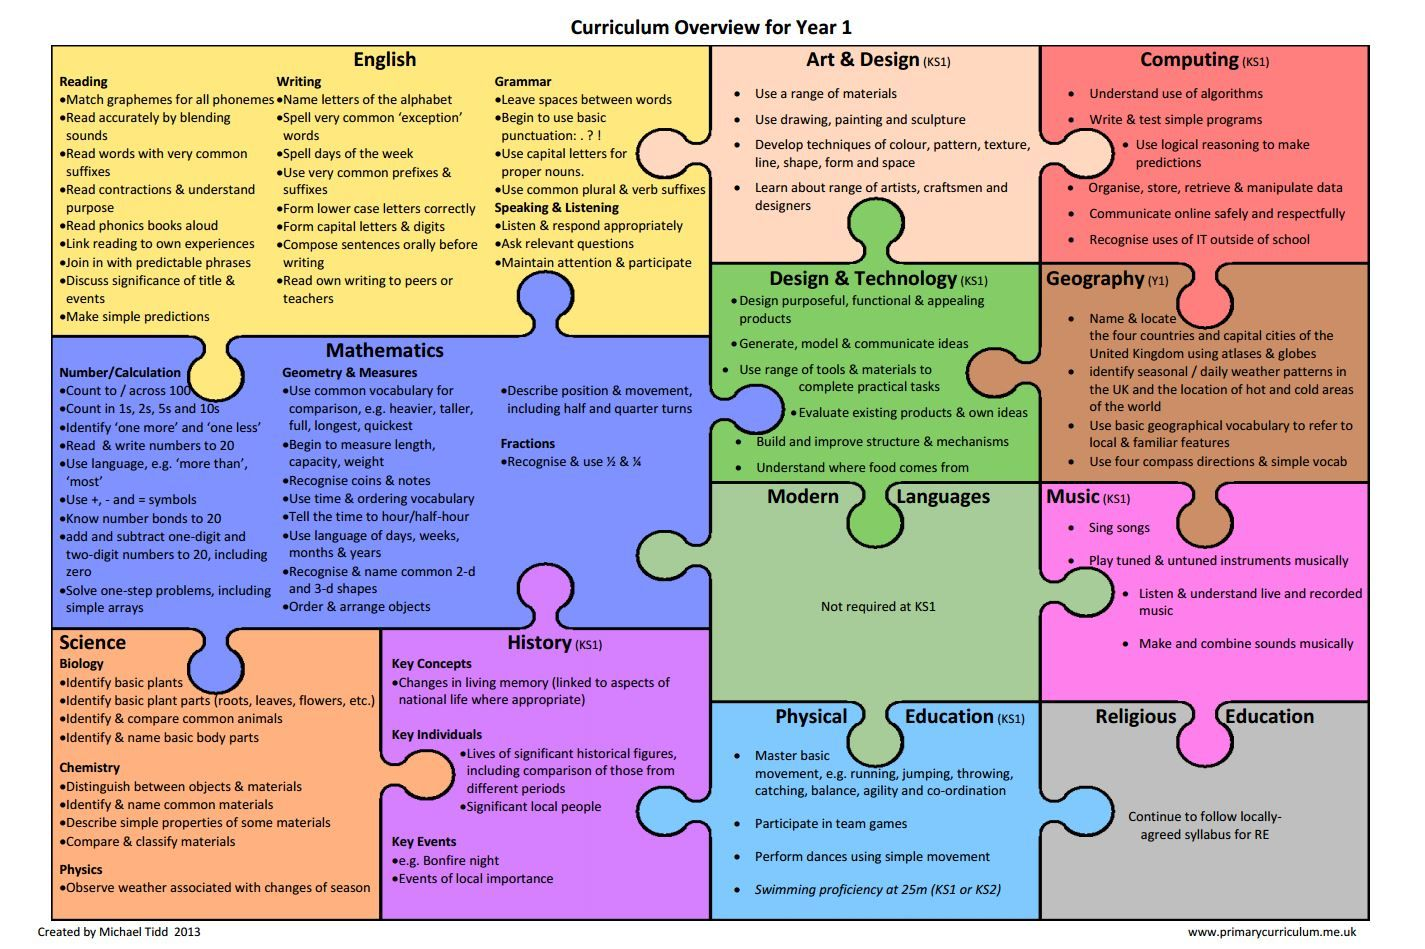 a curriculum mapping document which outlines the content of the new national curriculum  2014